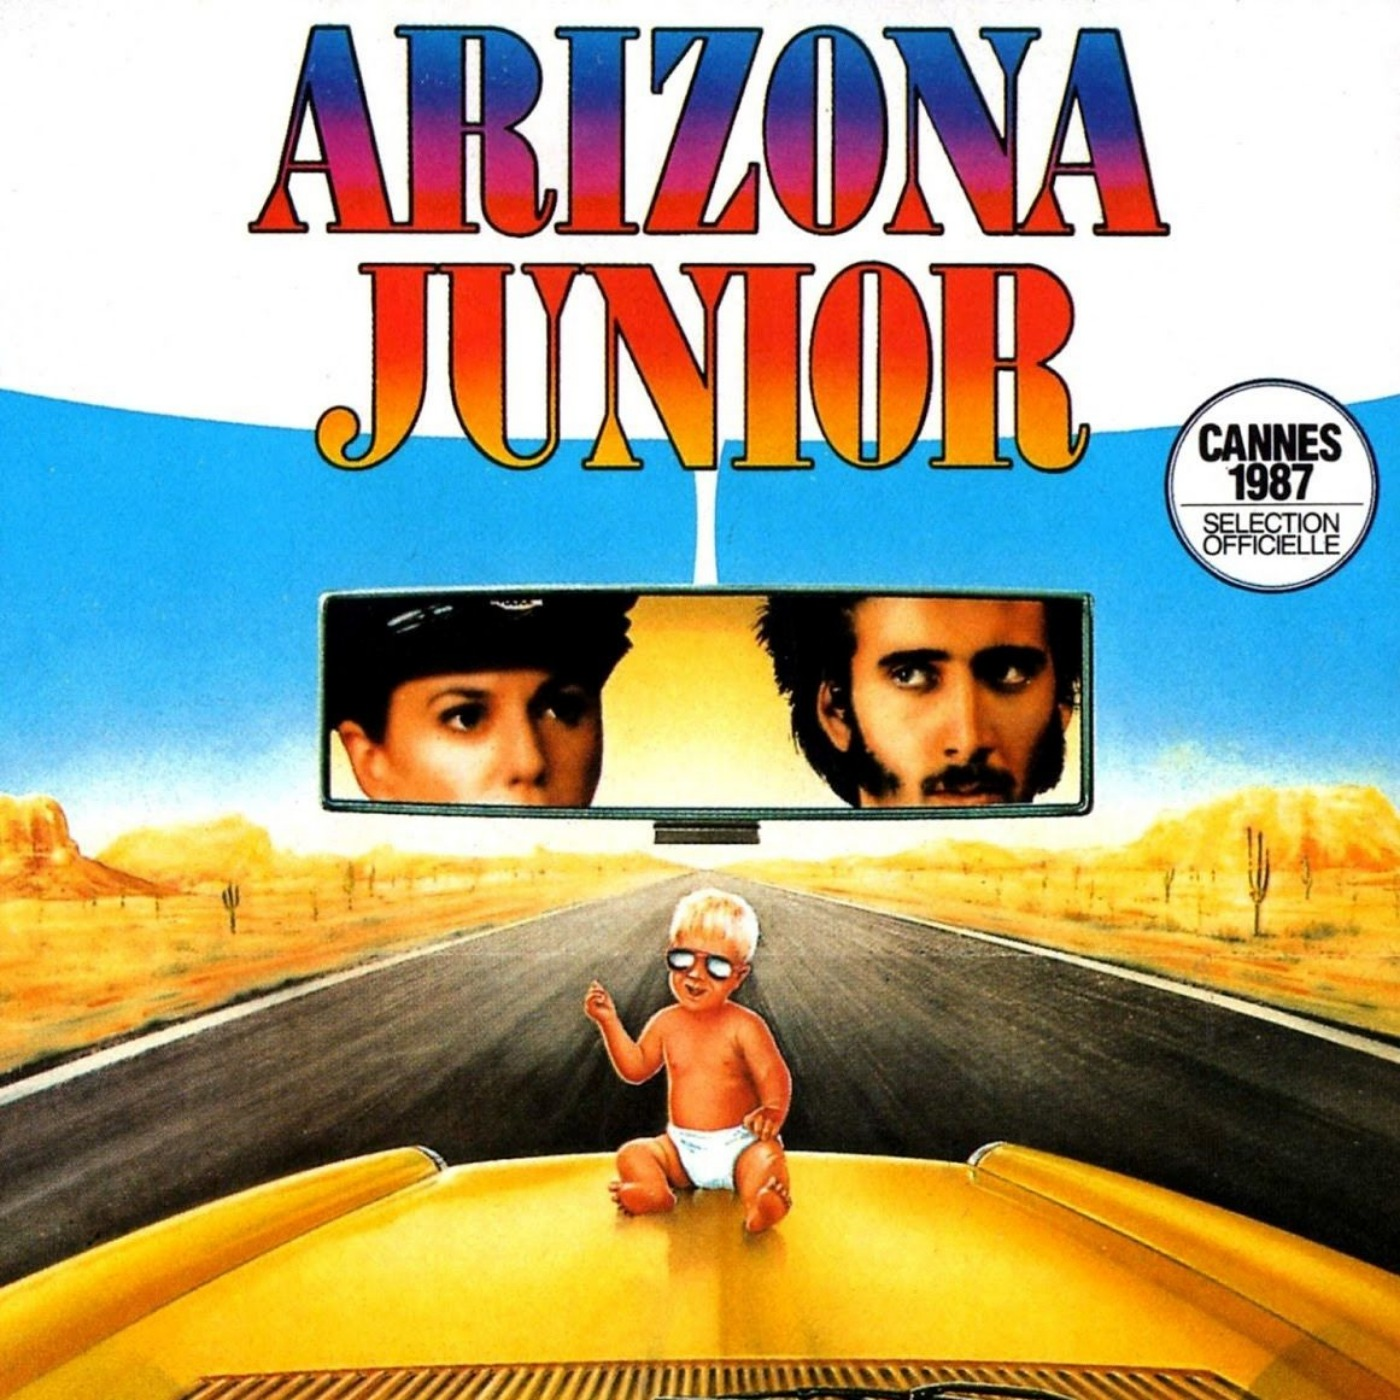 PODCAST CINEMA | critique du film ARIZONA JUNIOR | CinéMaRadio